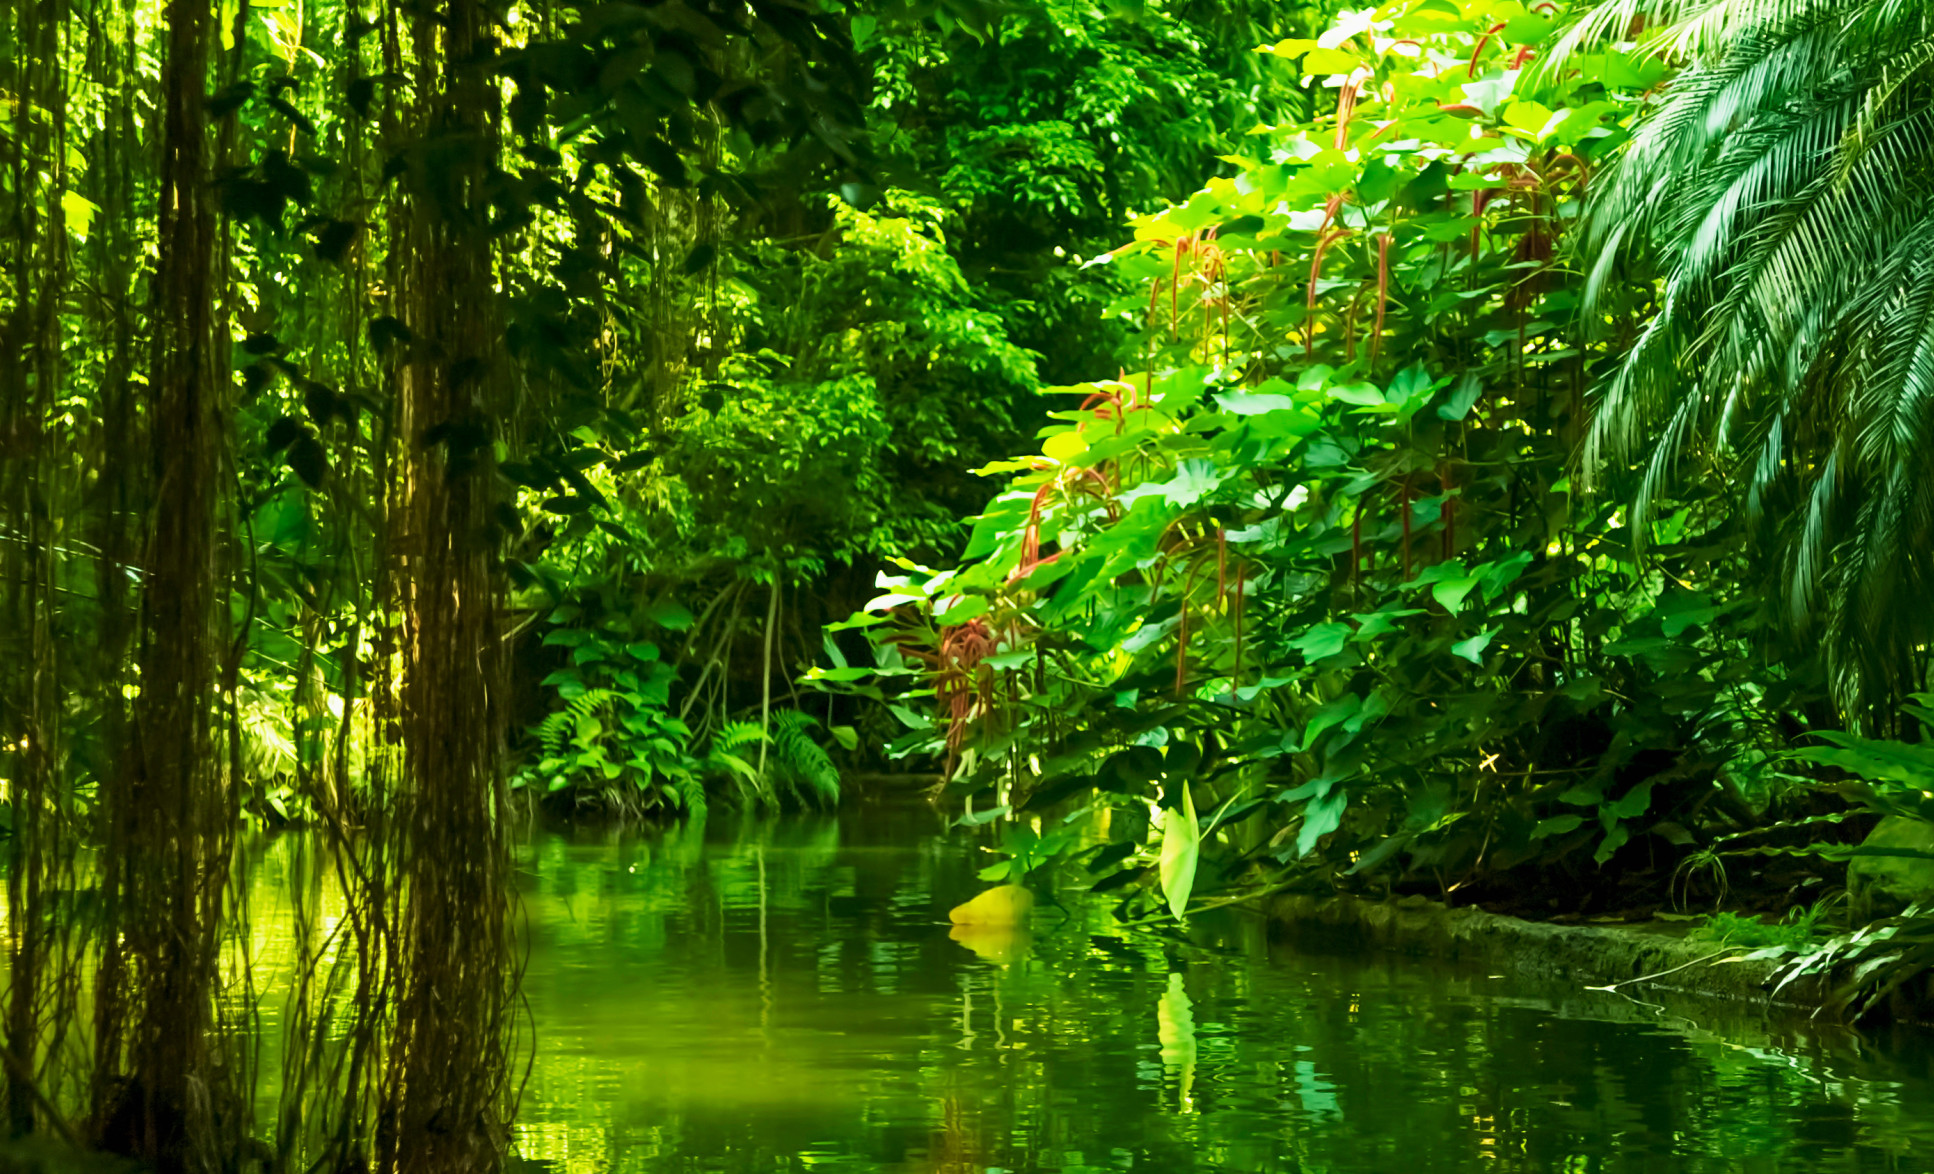 Landscape of lush tropical rainforest with river